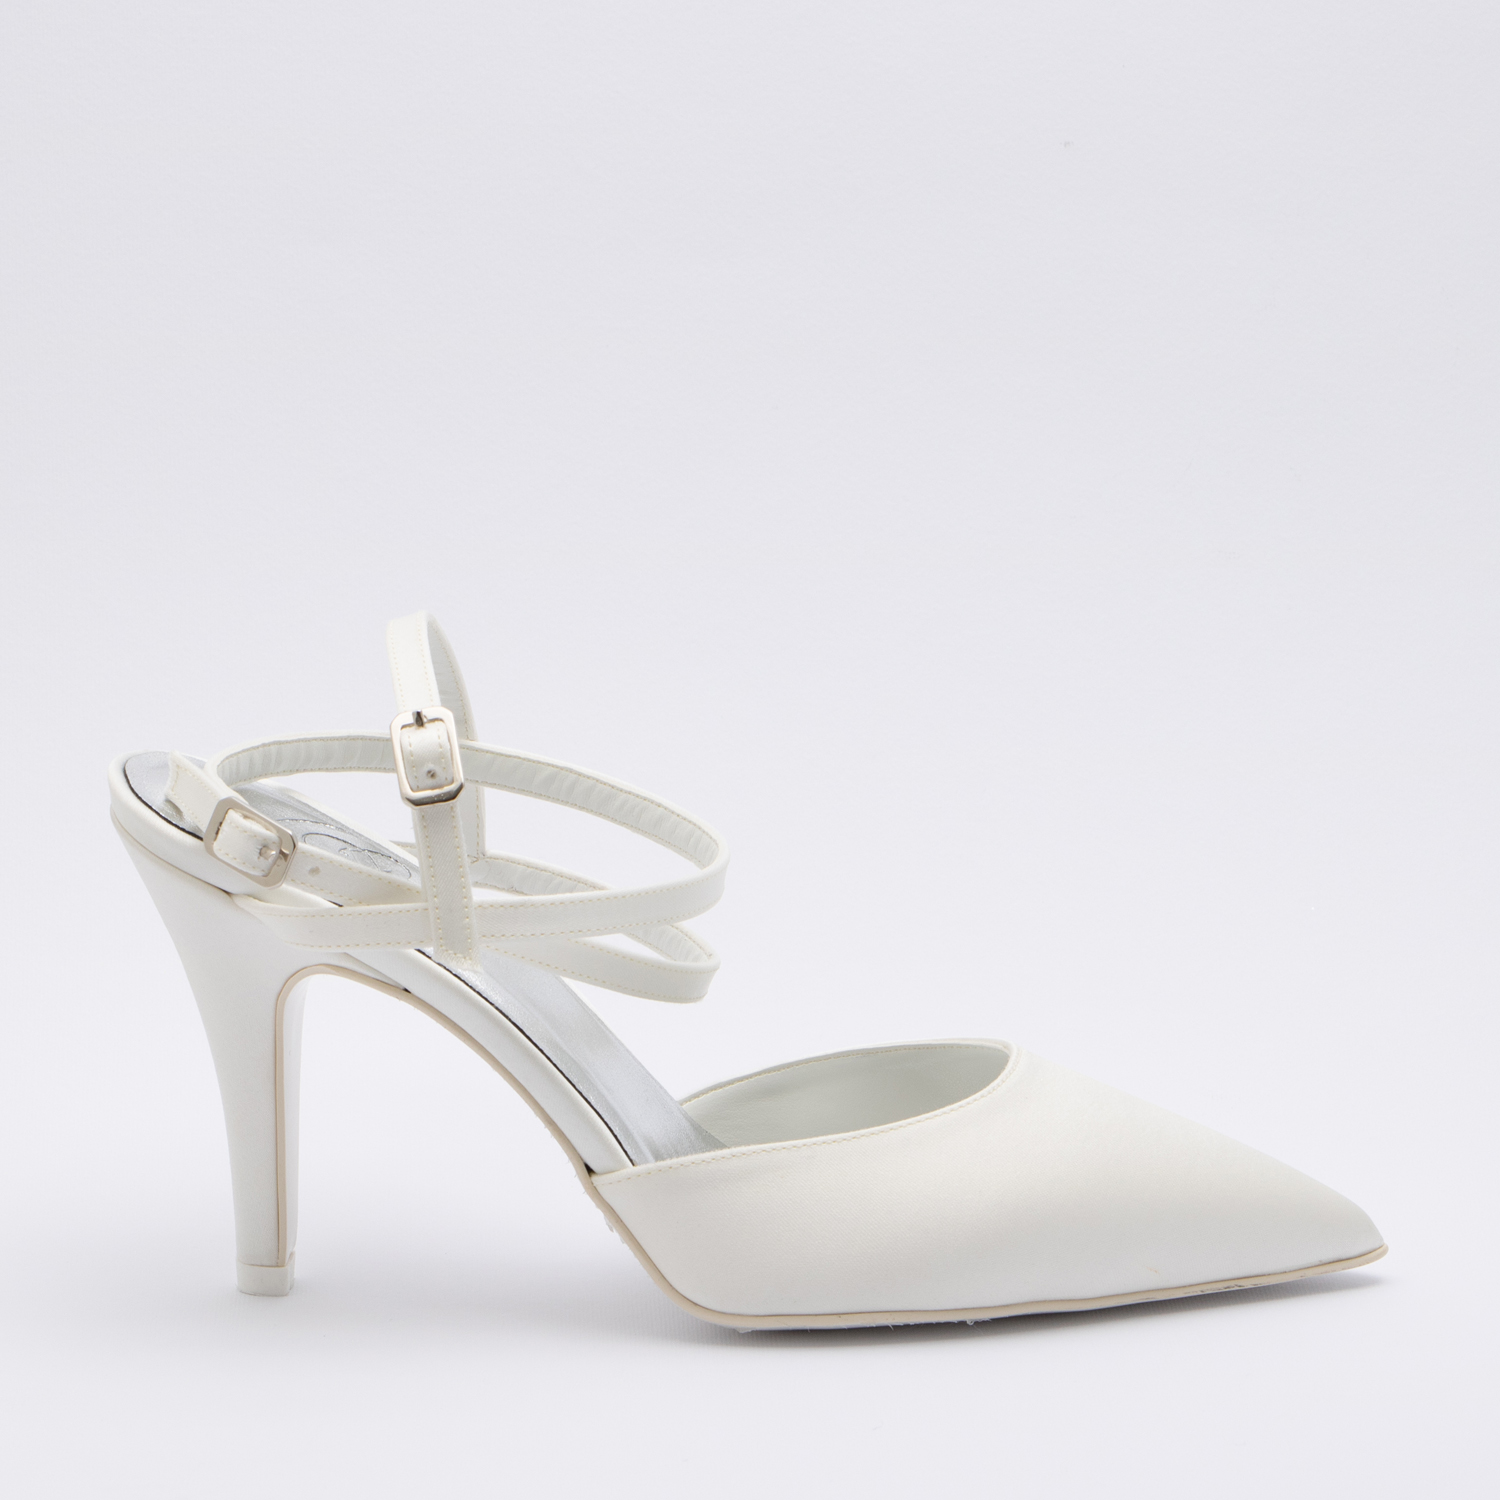 Scarpe Chanel Sposa.Patrizia Cavalleri Wedding Shoes Chanel Sposa With Cross Straps